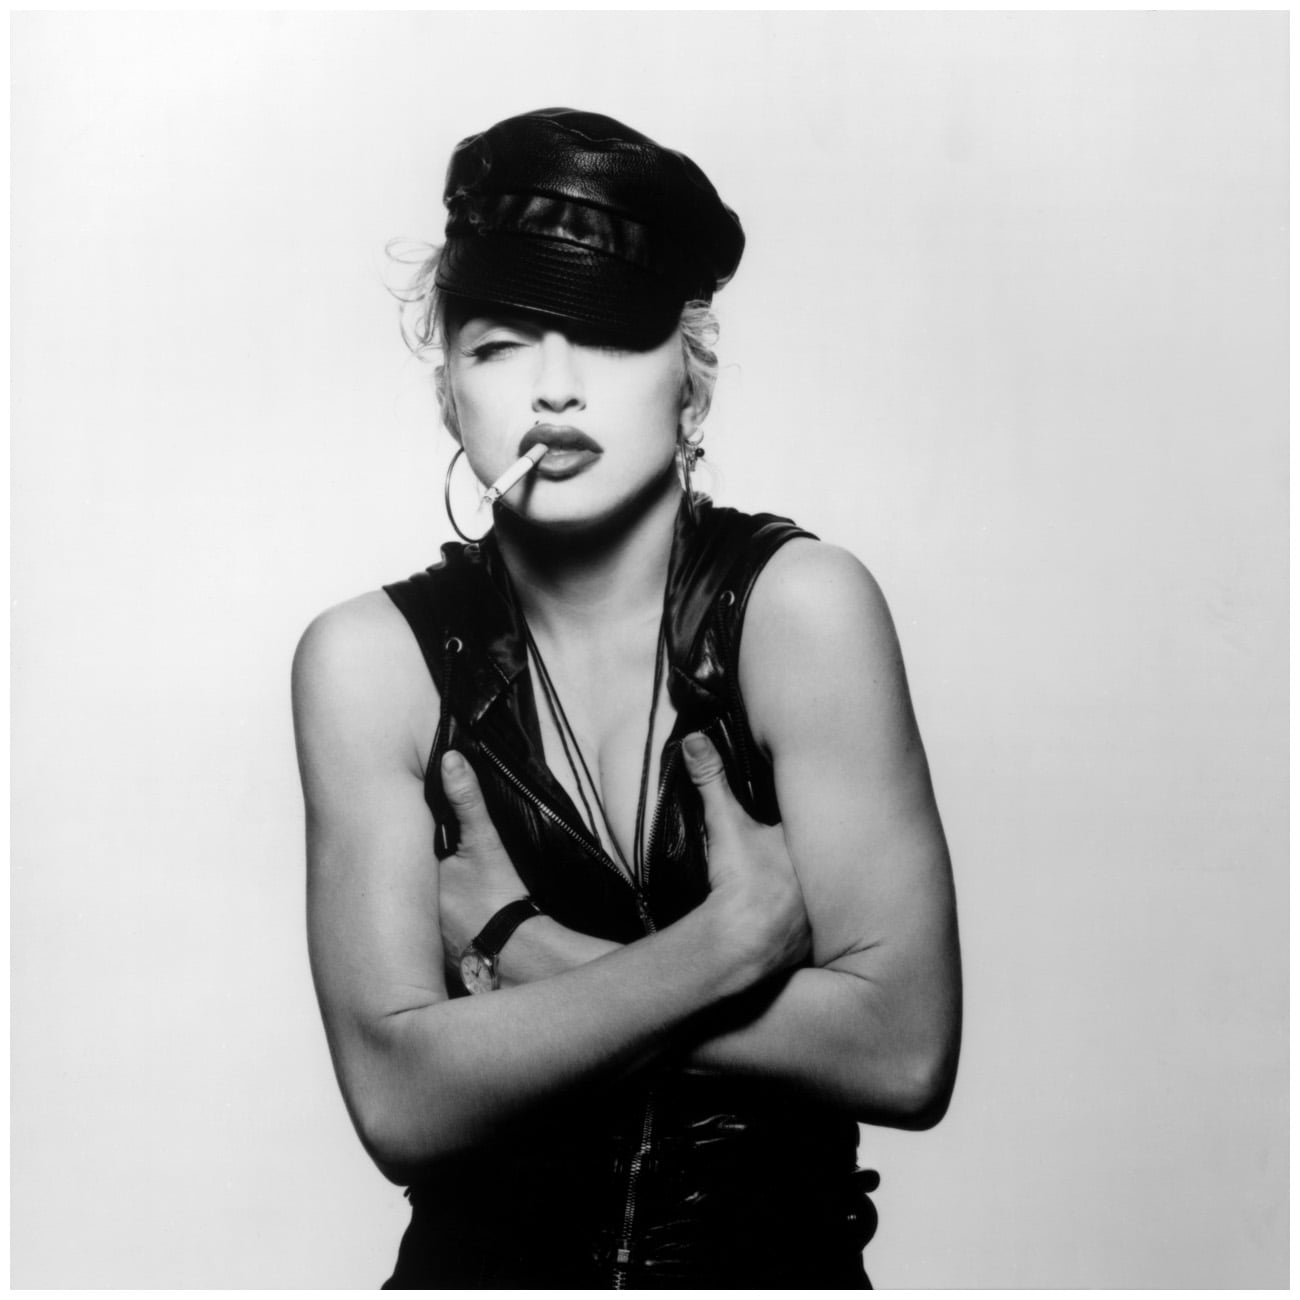 Madonna photographed by Patrick Demarchelier in 1991.